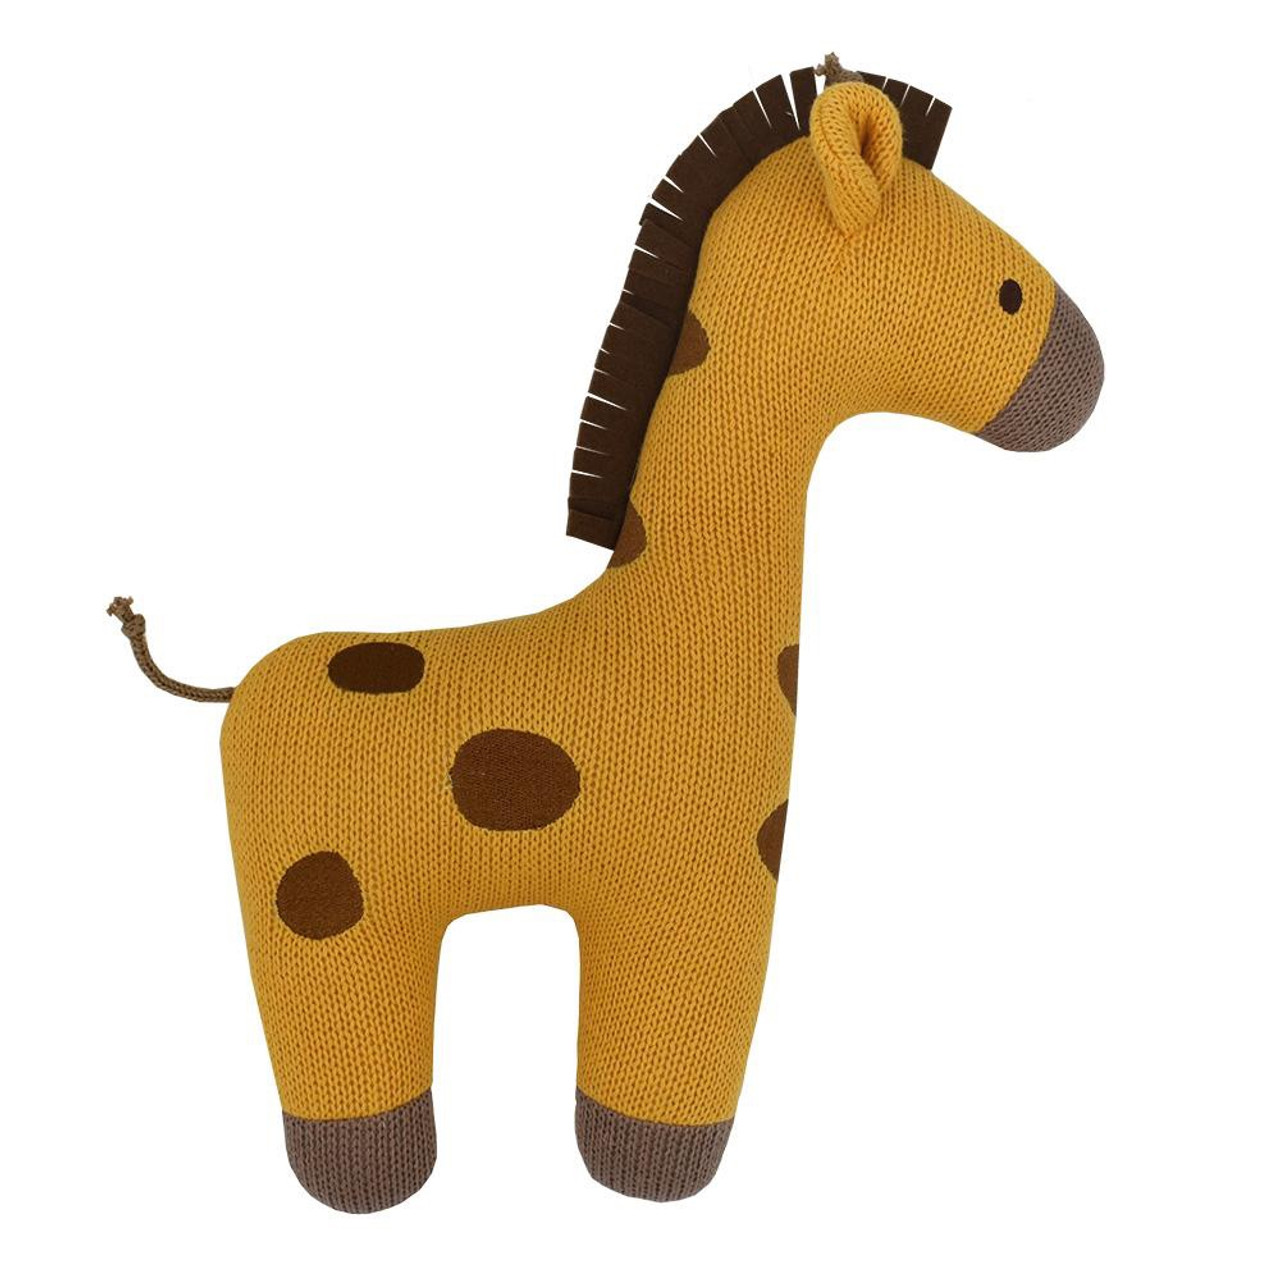 Lolli Living Character Knit Cushion Giraffe at Baby Barn Discounts Stylish knitted character cushion from Lolli Living.